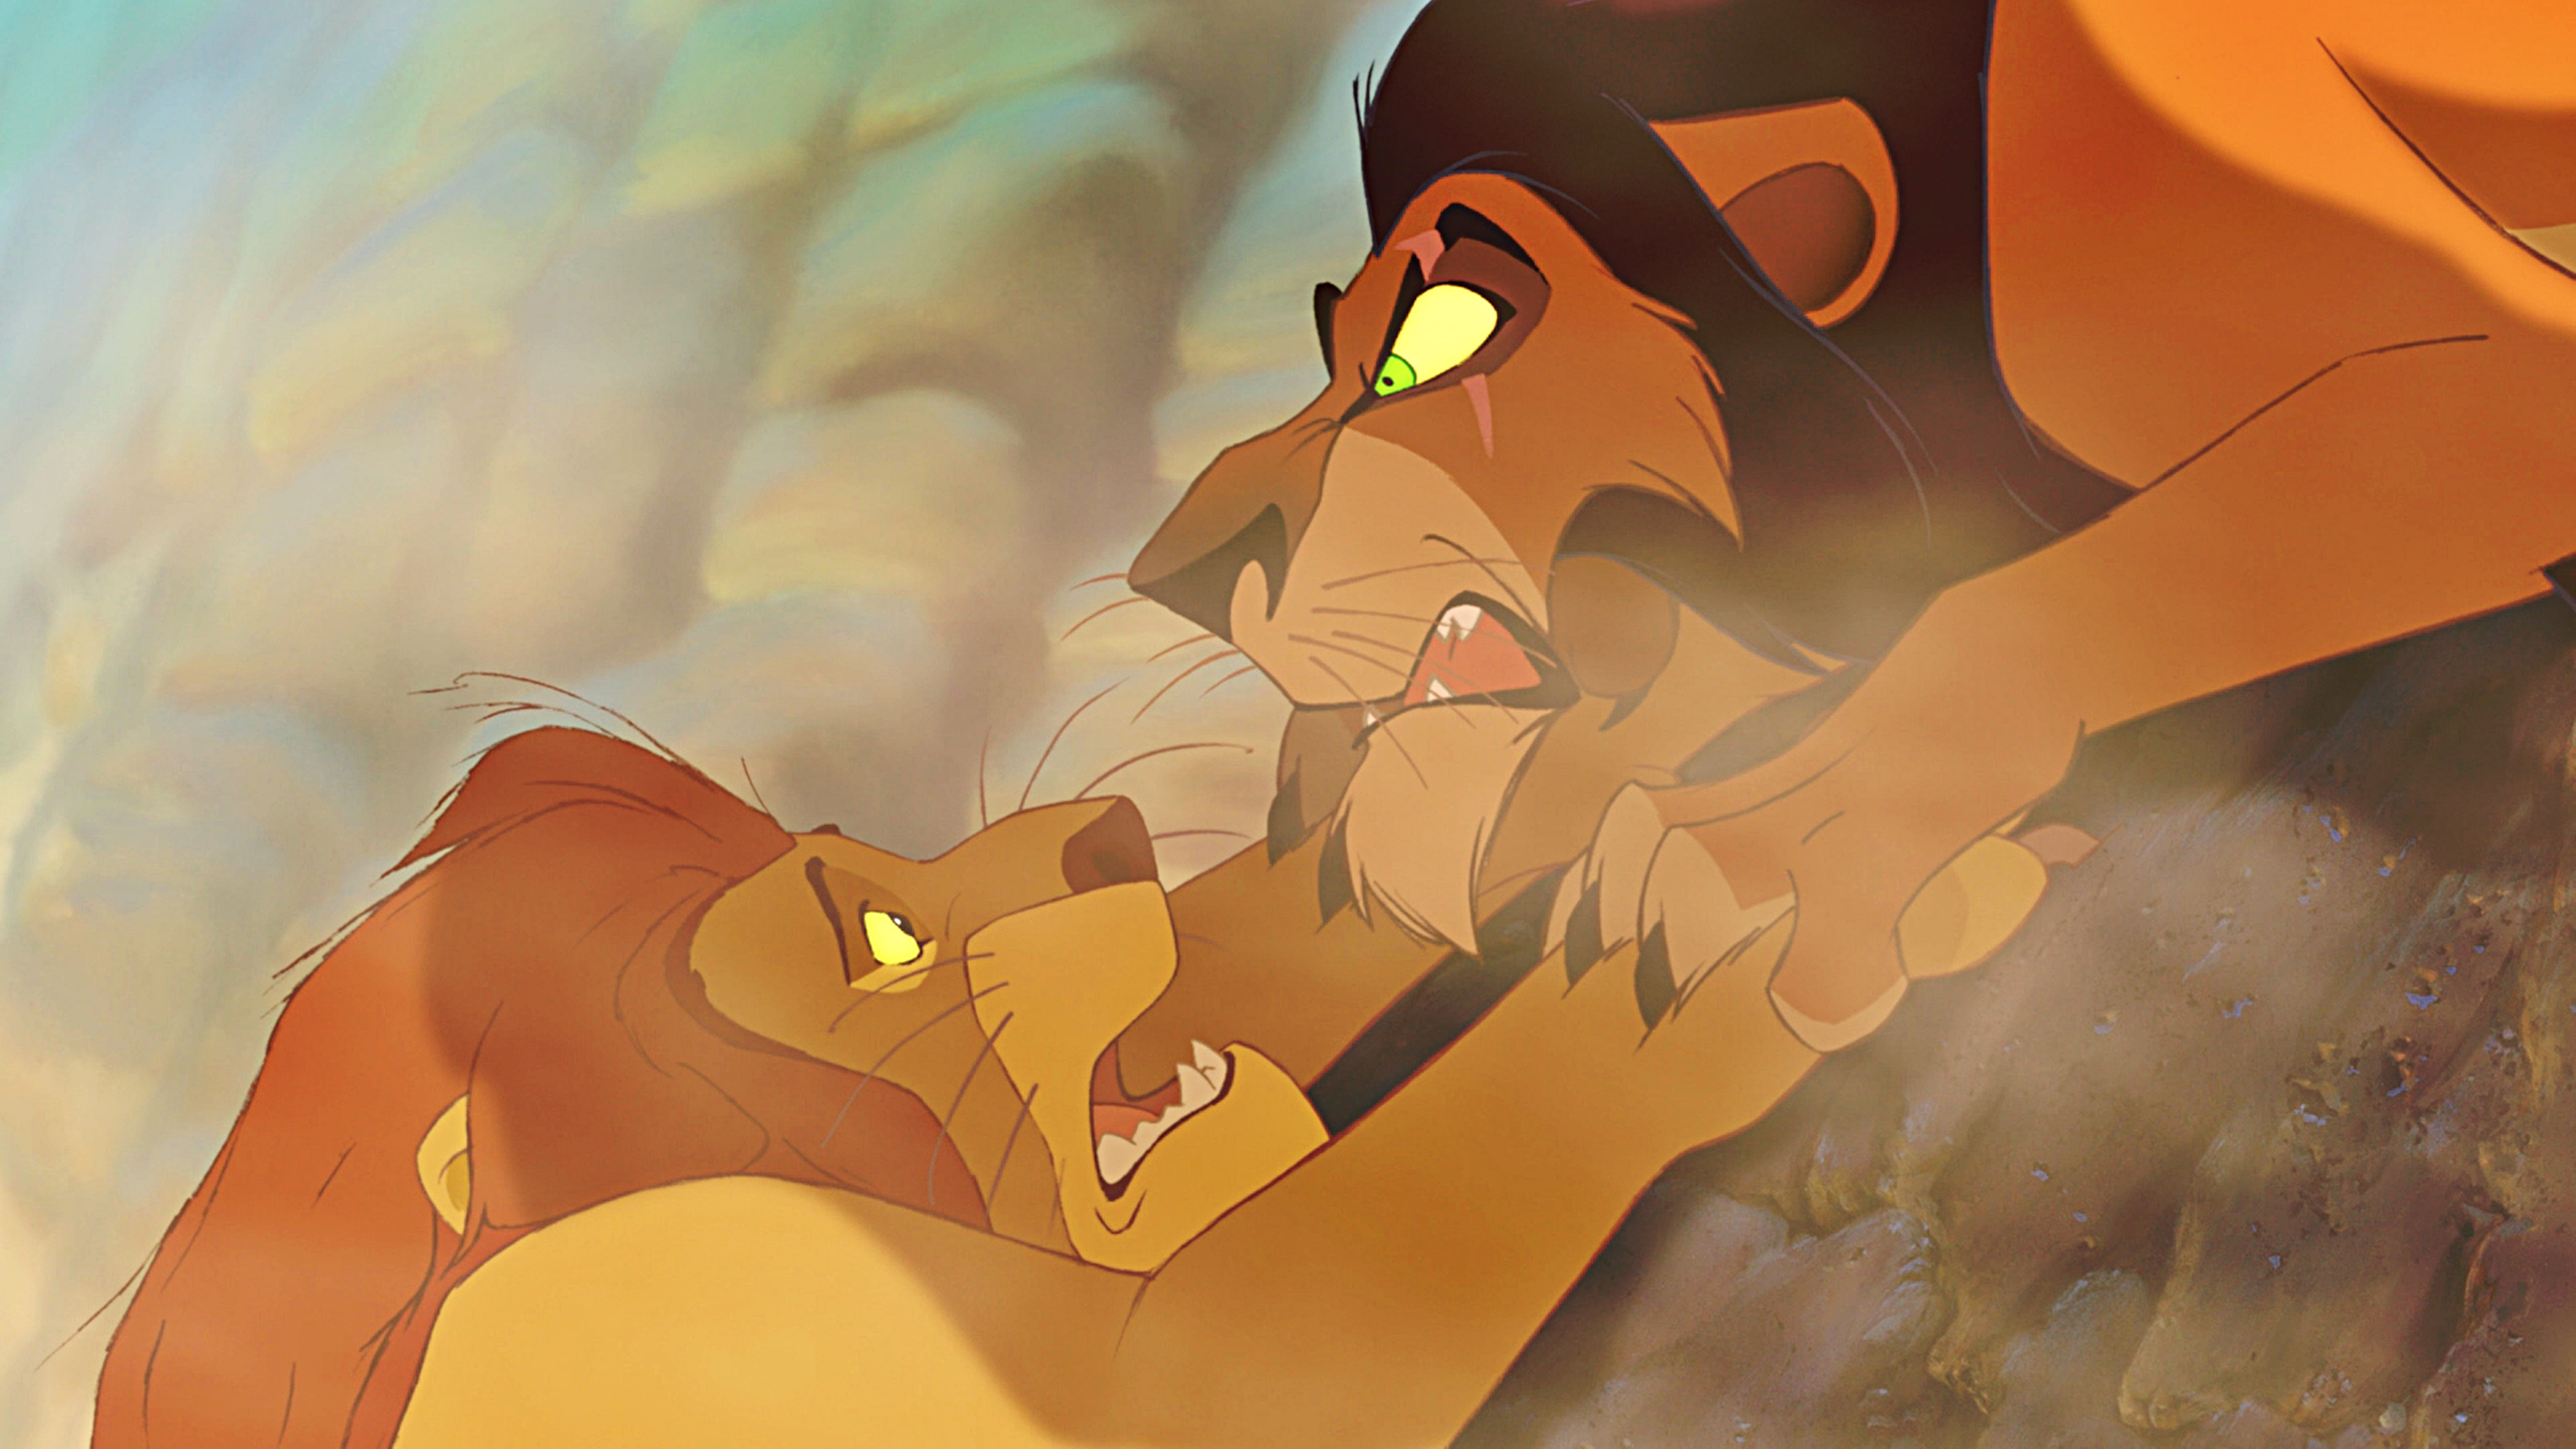 The lion king mufasa and scar - photo#9